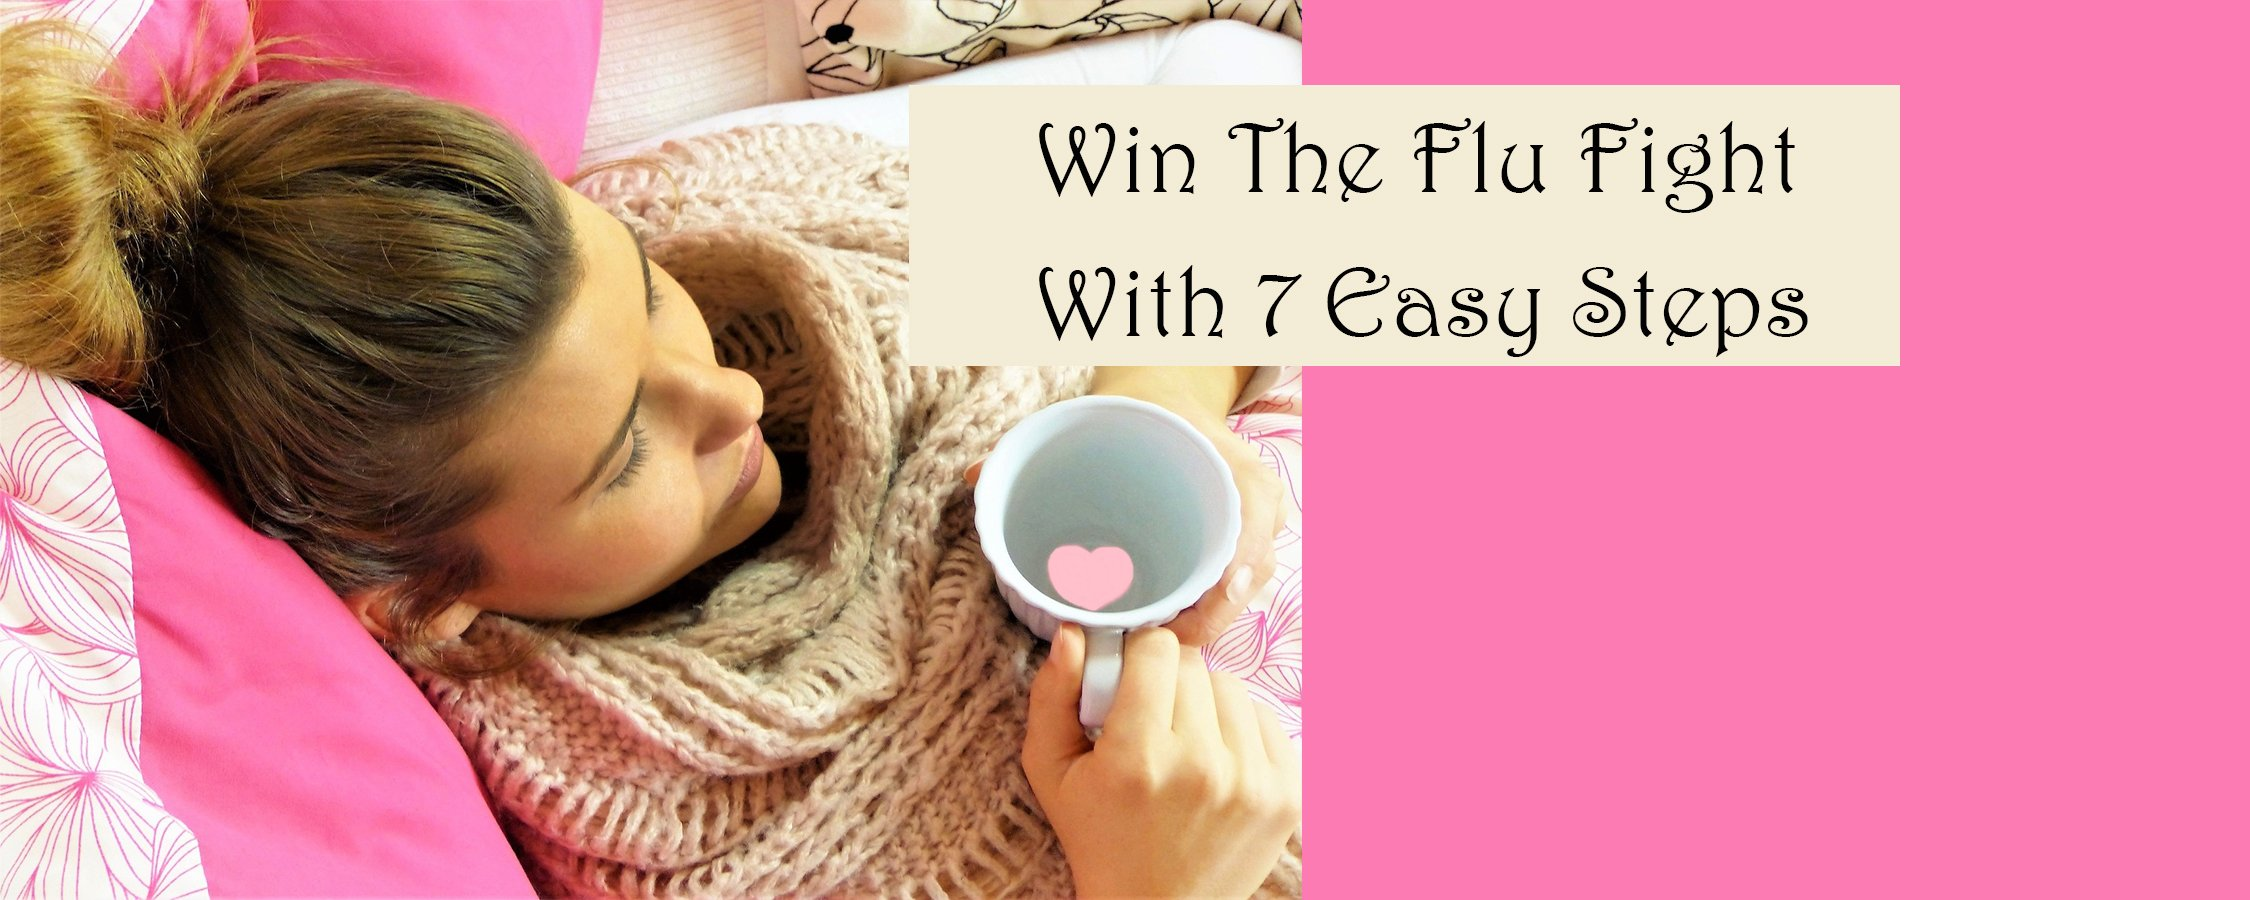 Win The Flu Flight